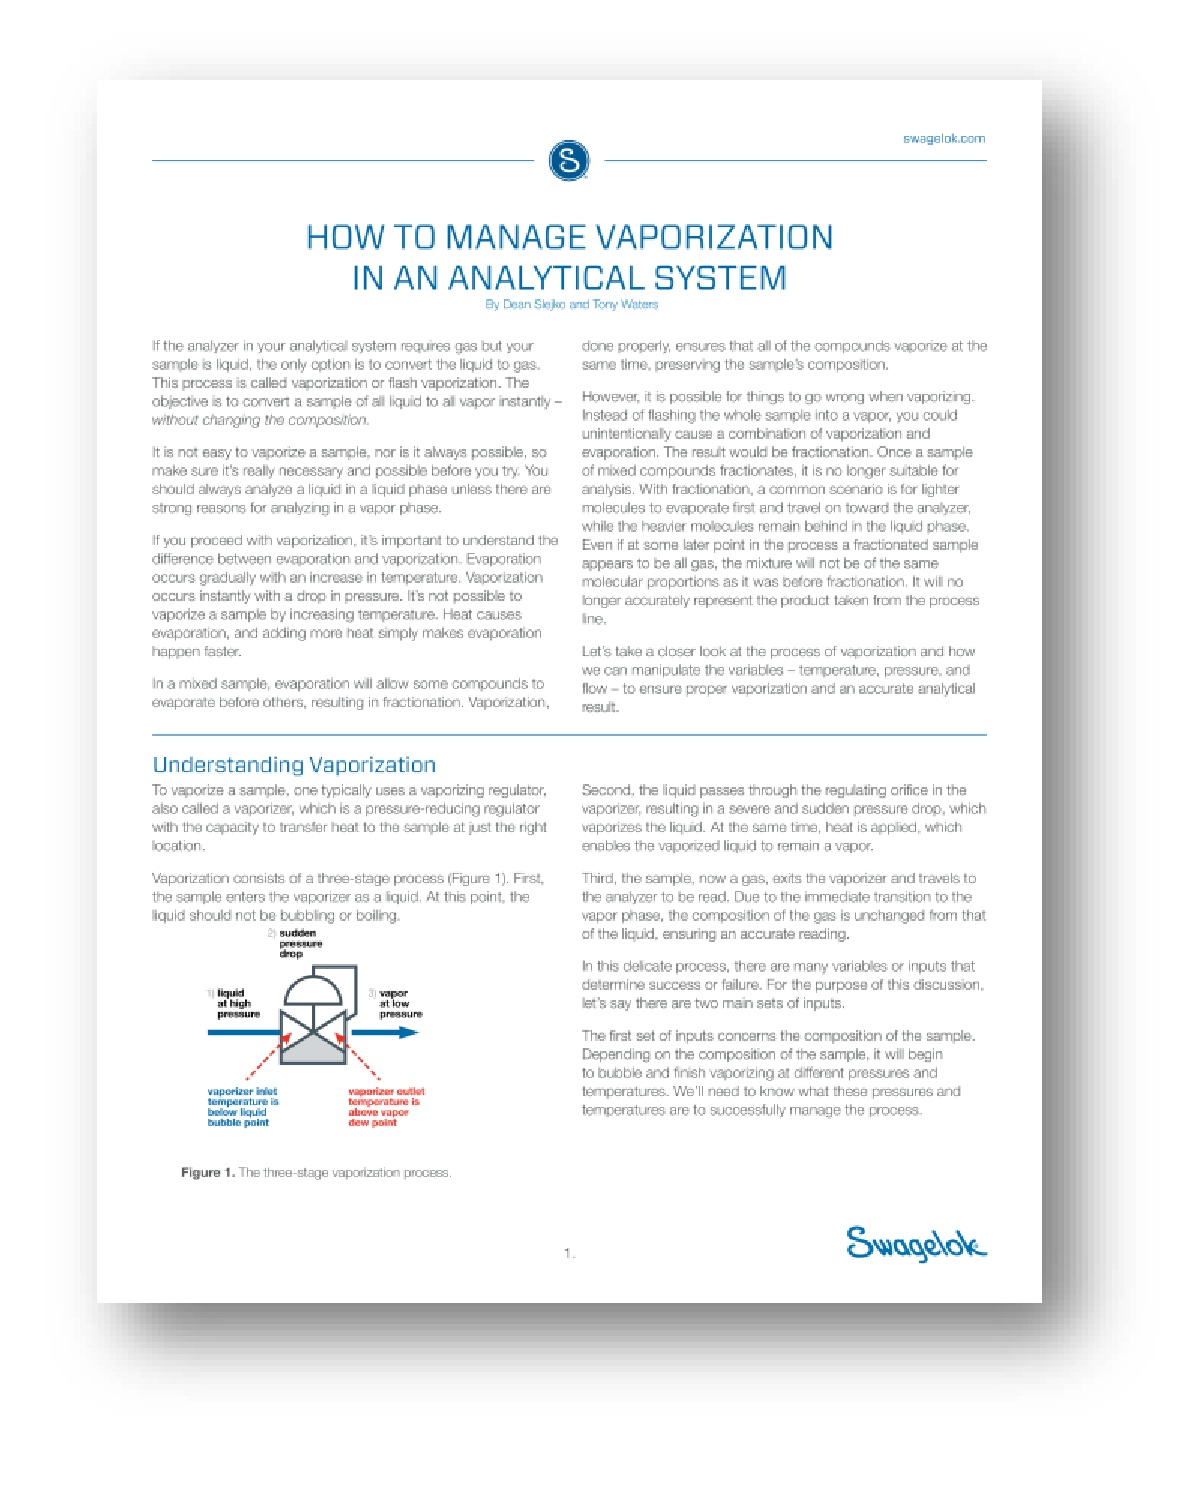 How to Manage Vaporization in an Analytical System